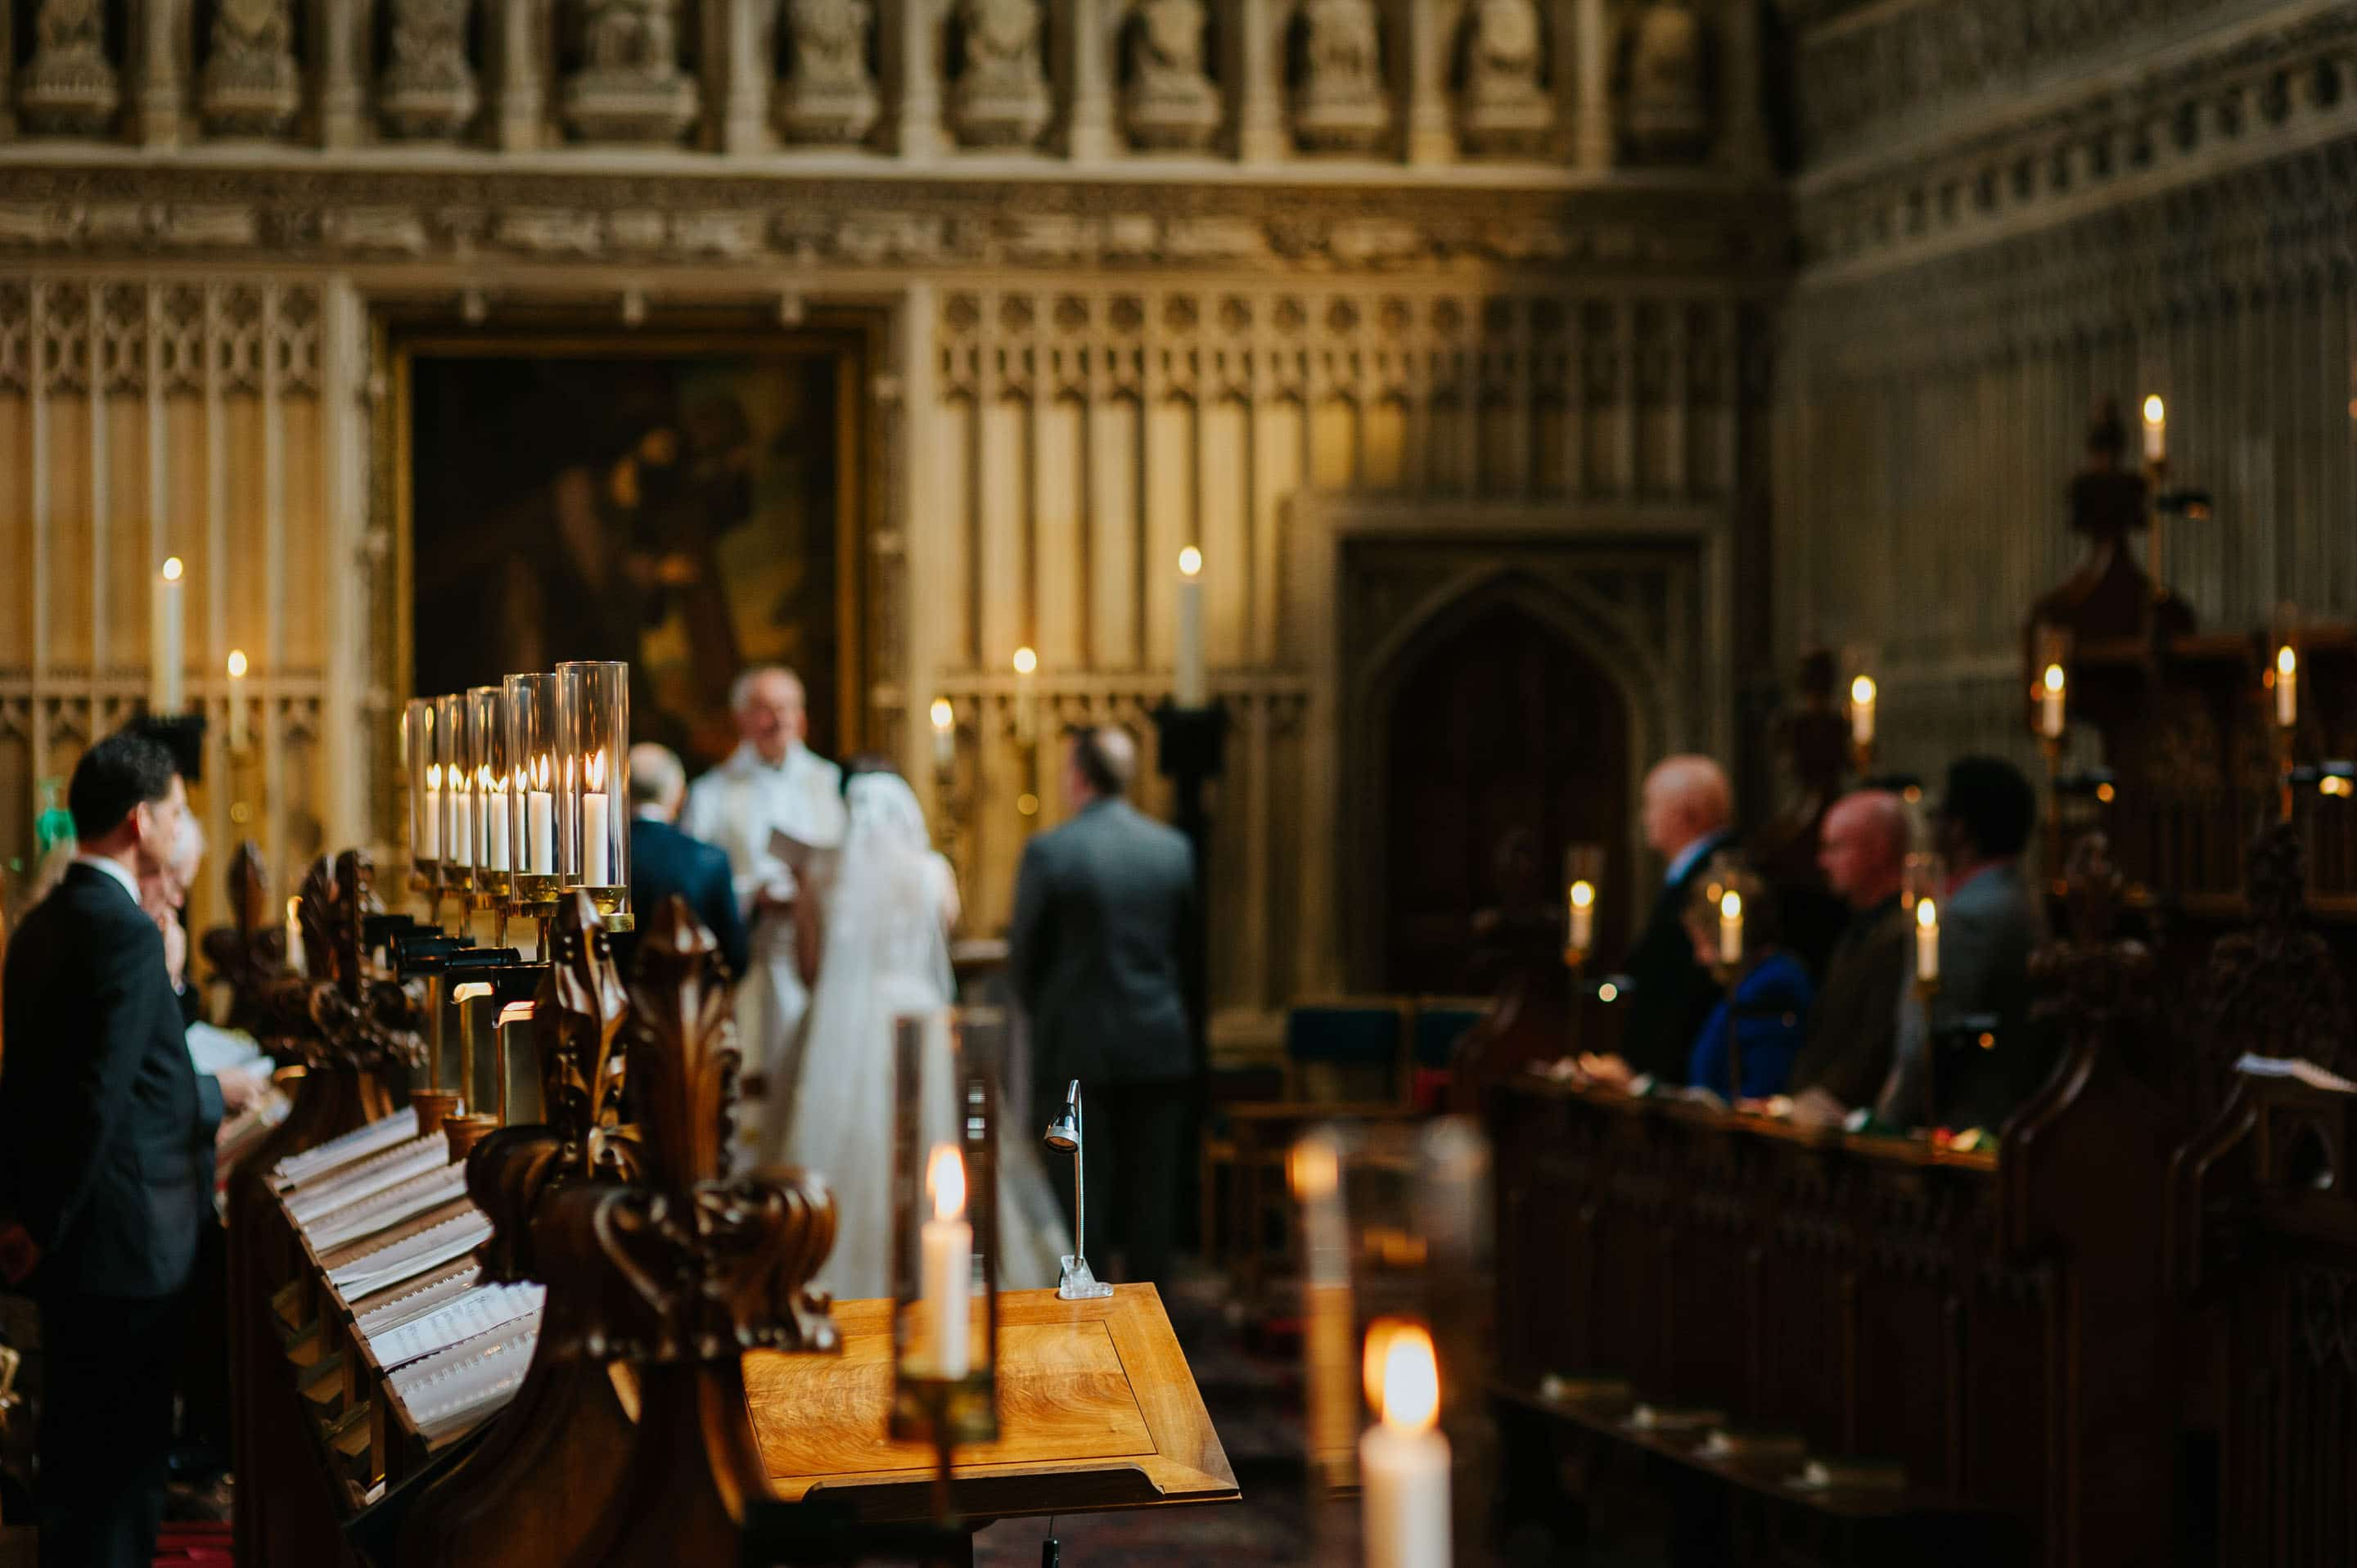 wedding at magdalen college in oxford 26 - Tommie + Virginia | Wedding at Magdalen College in Oxford